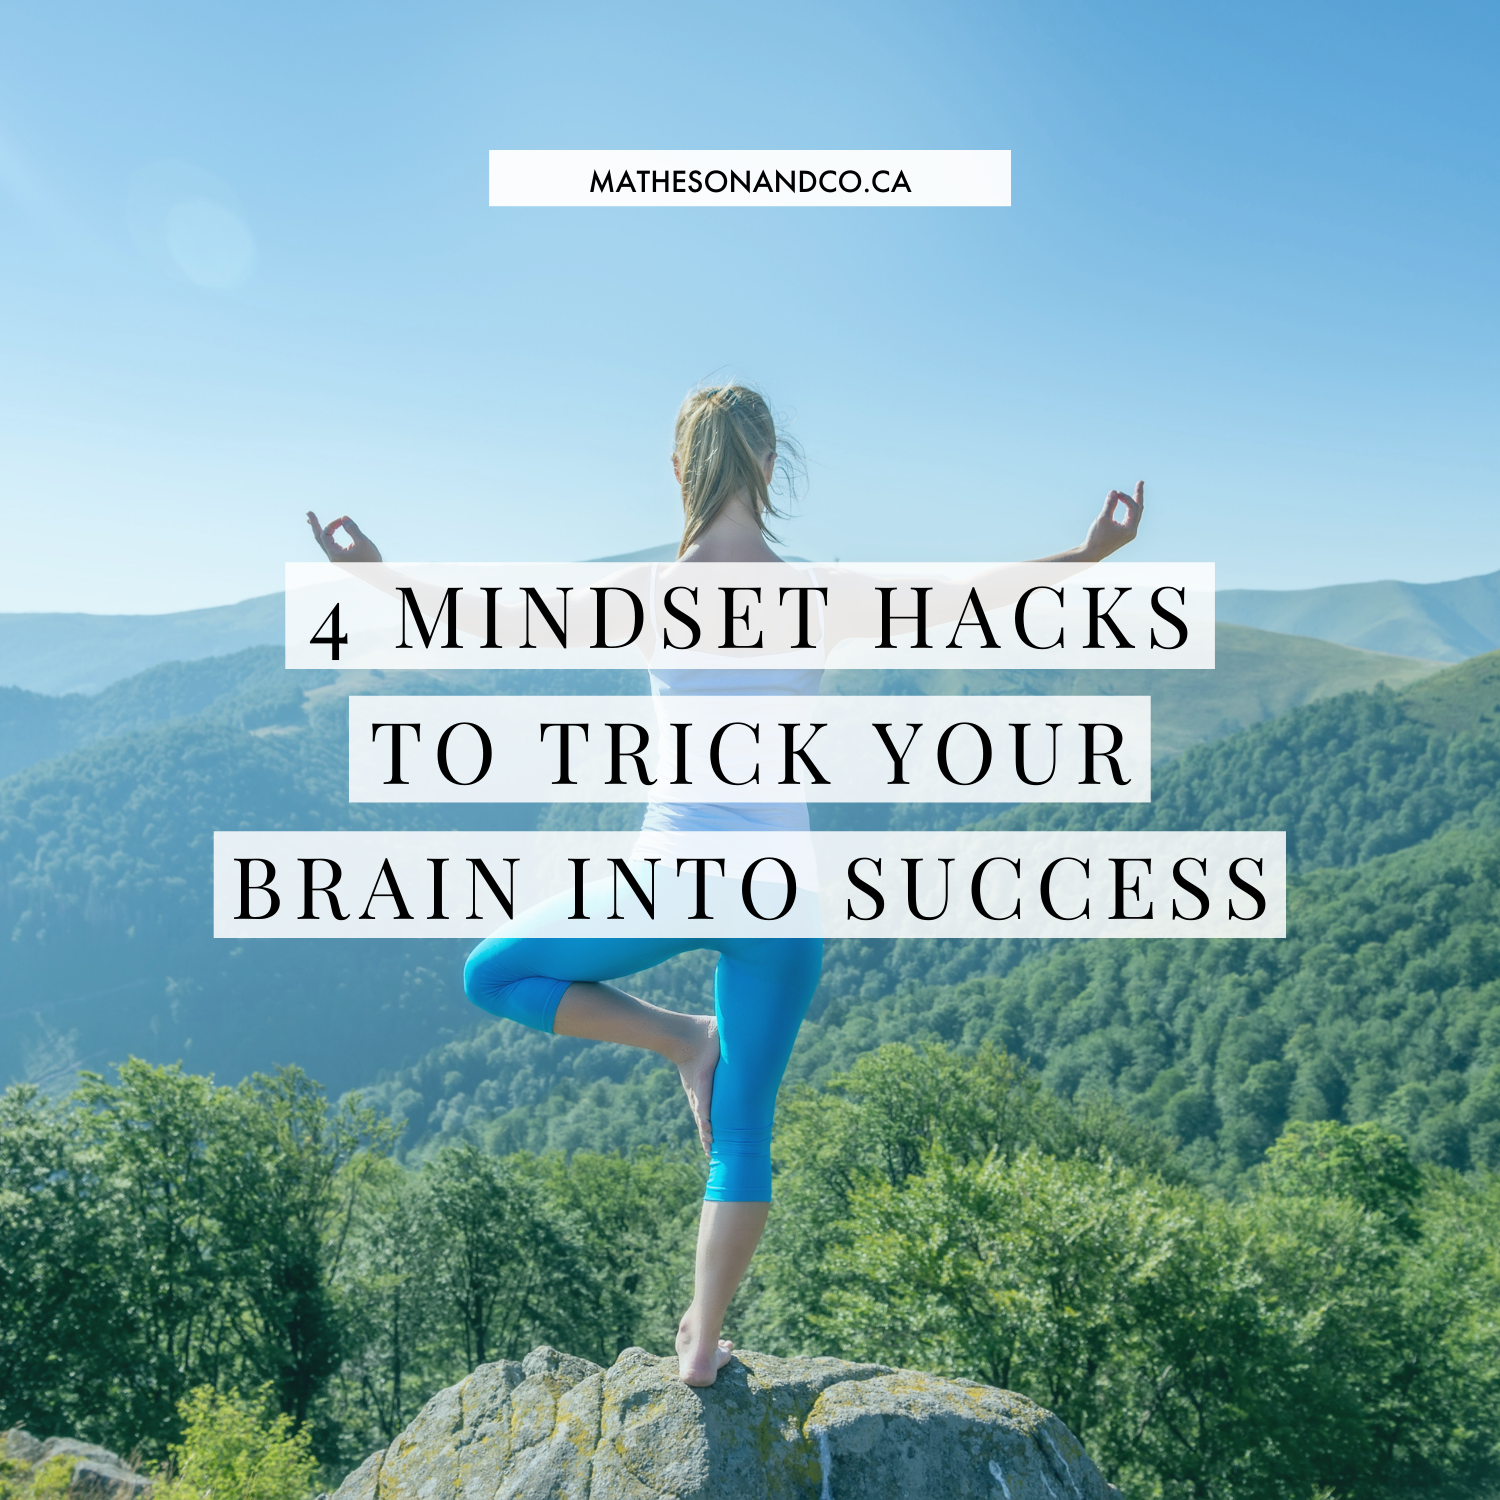 4 Mindset Hacks to Trick your Brain into Success